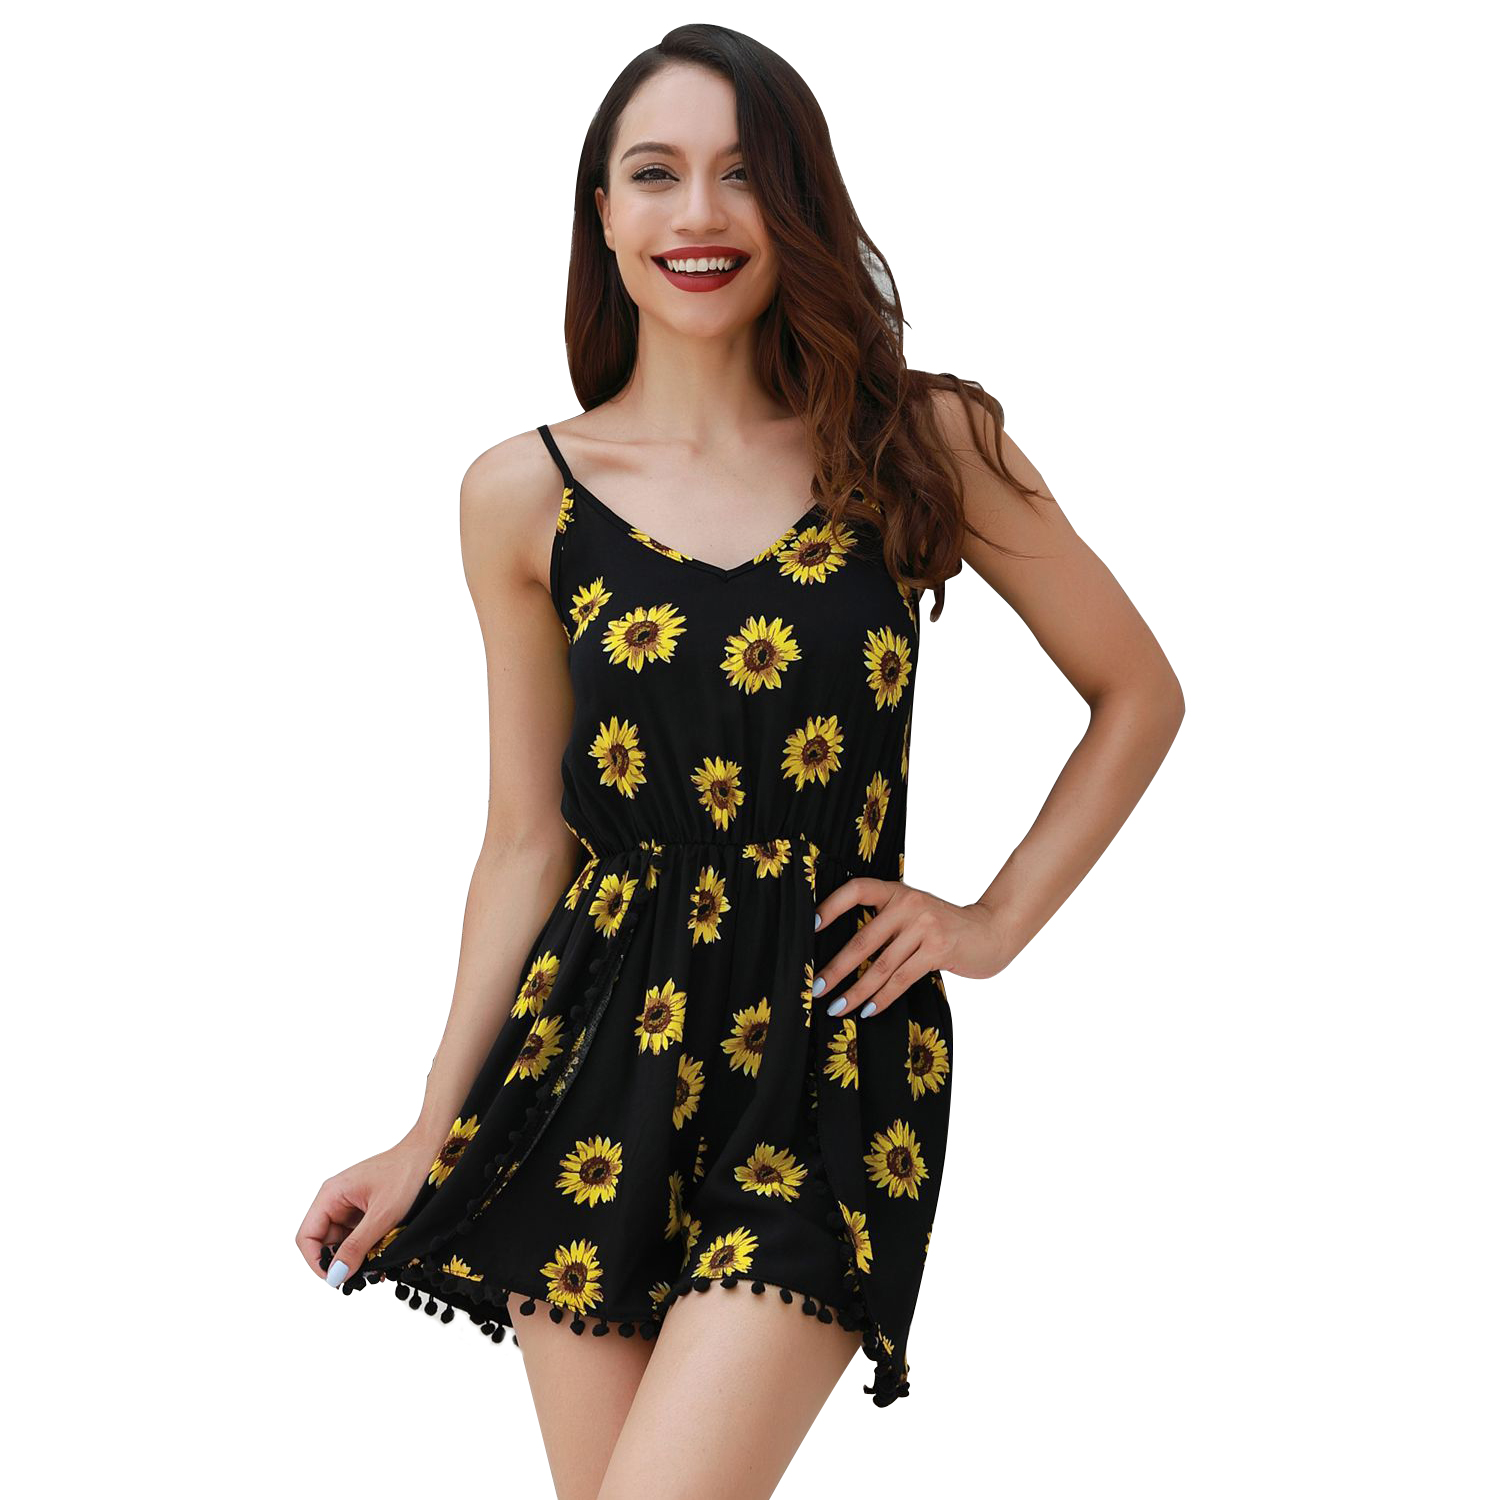 Arcohuang Summer Sexy Sling Women Jumpsuit Daisy Print V Neck Backless Lady Beach Playsuit Shorts + Cami One Piece Jumpsuit